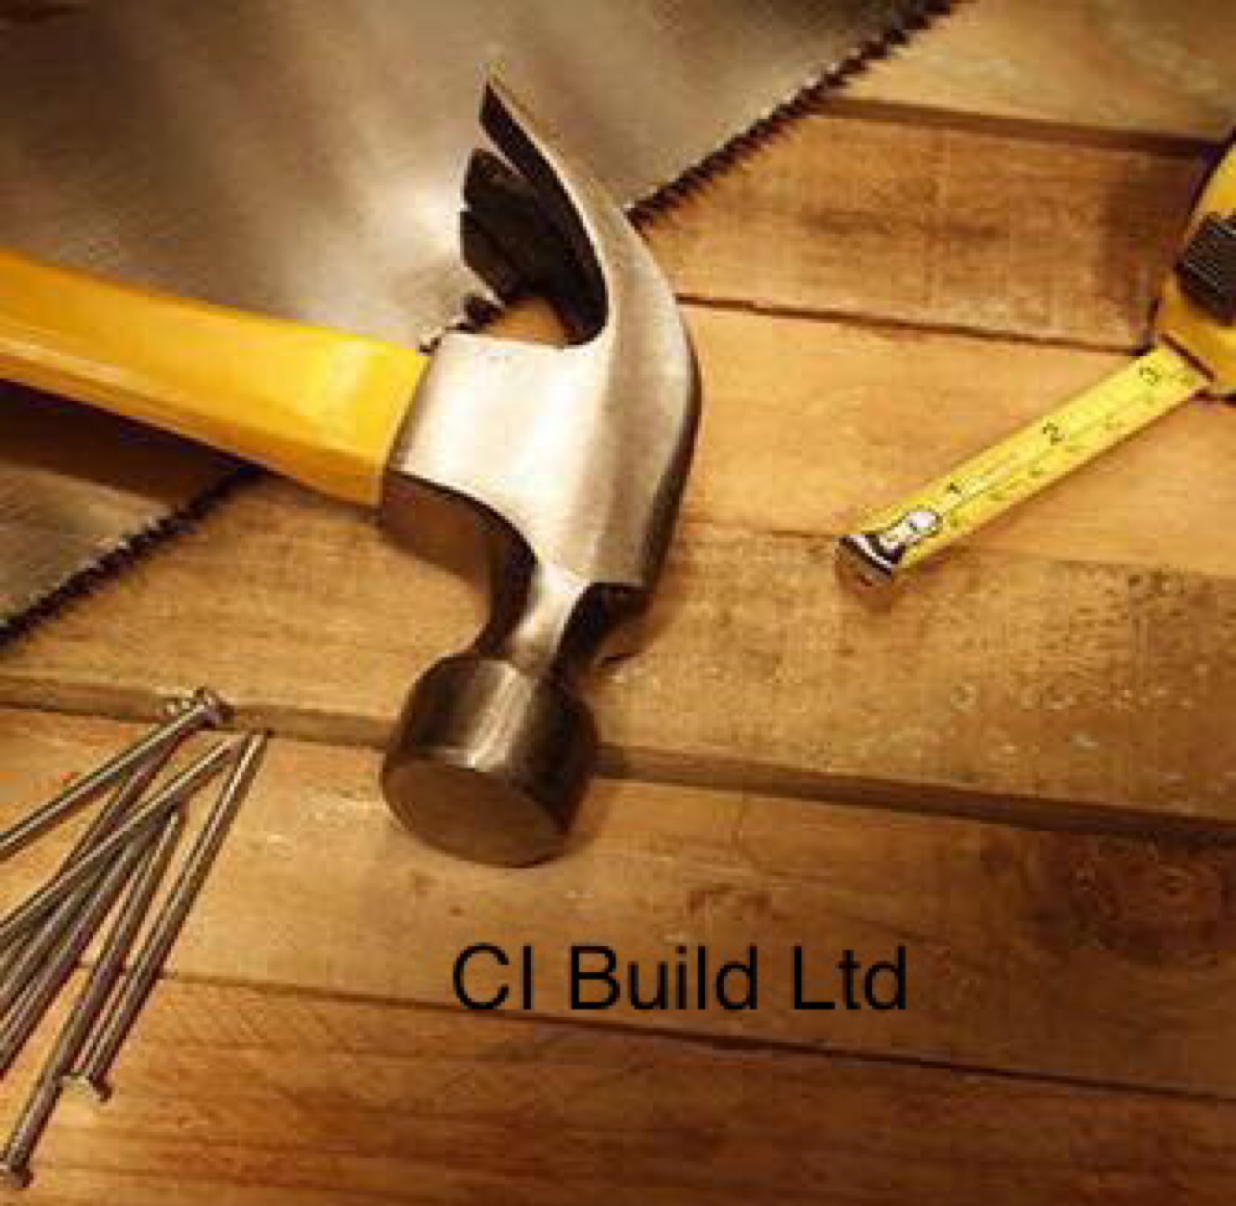 CI Build Ltd